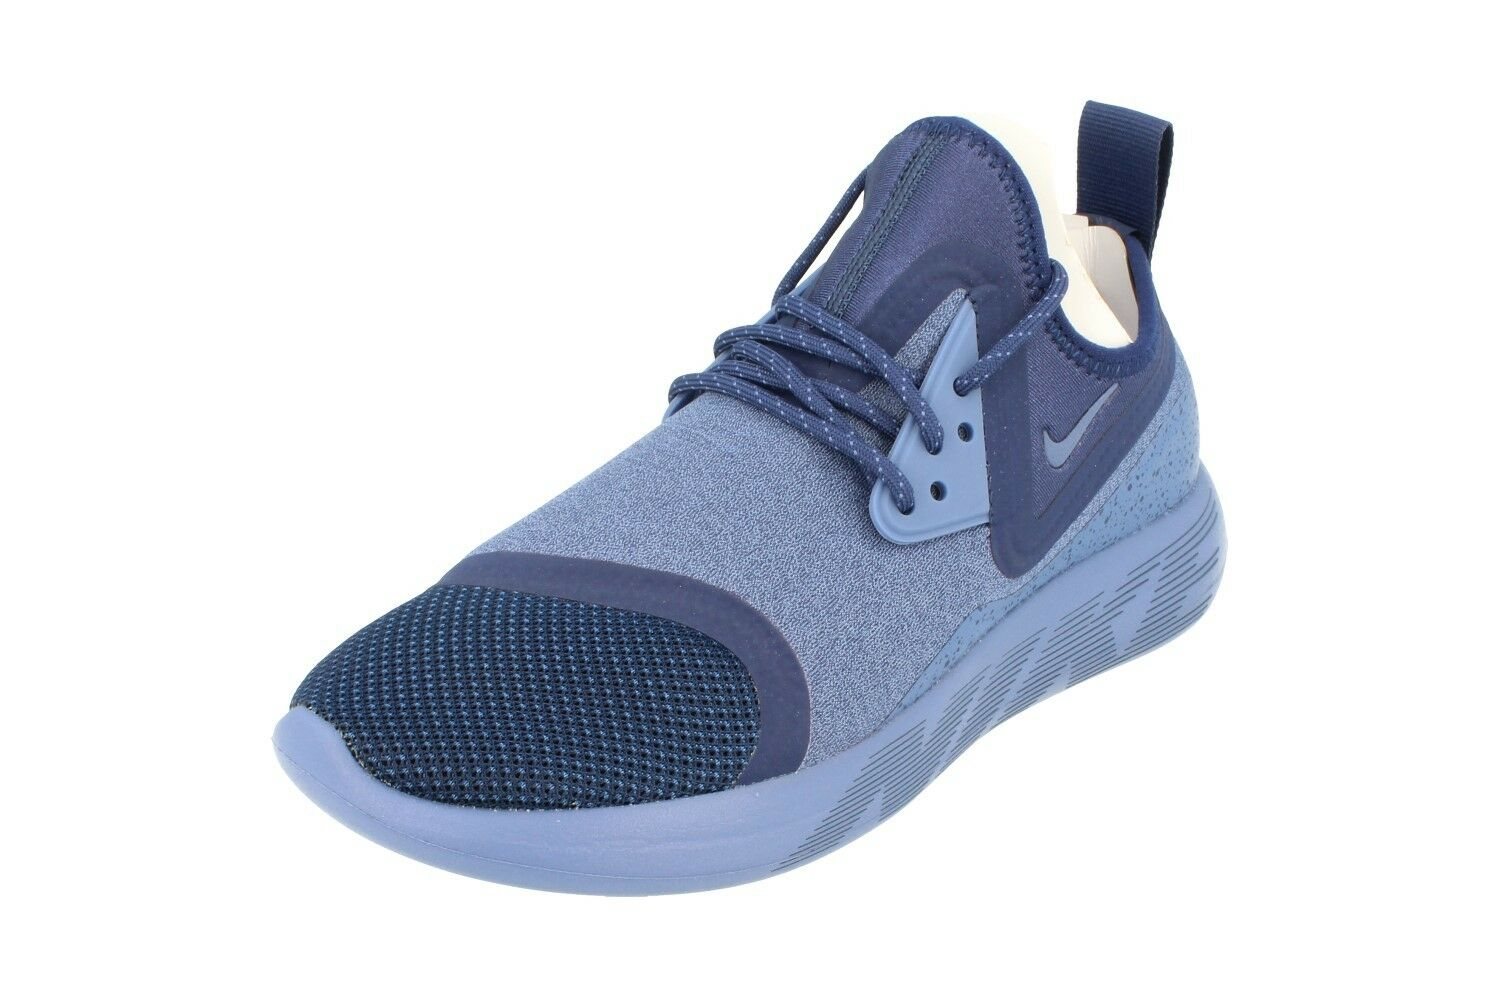 d0fa52de24 Nike Lunarcharge Essential Mens Running Trainers 923619 Sneakers shoes 447  nccbdx1014-Athletic Shoes